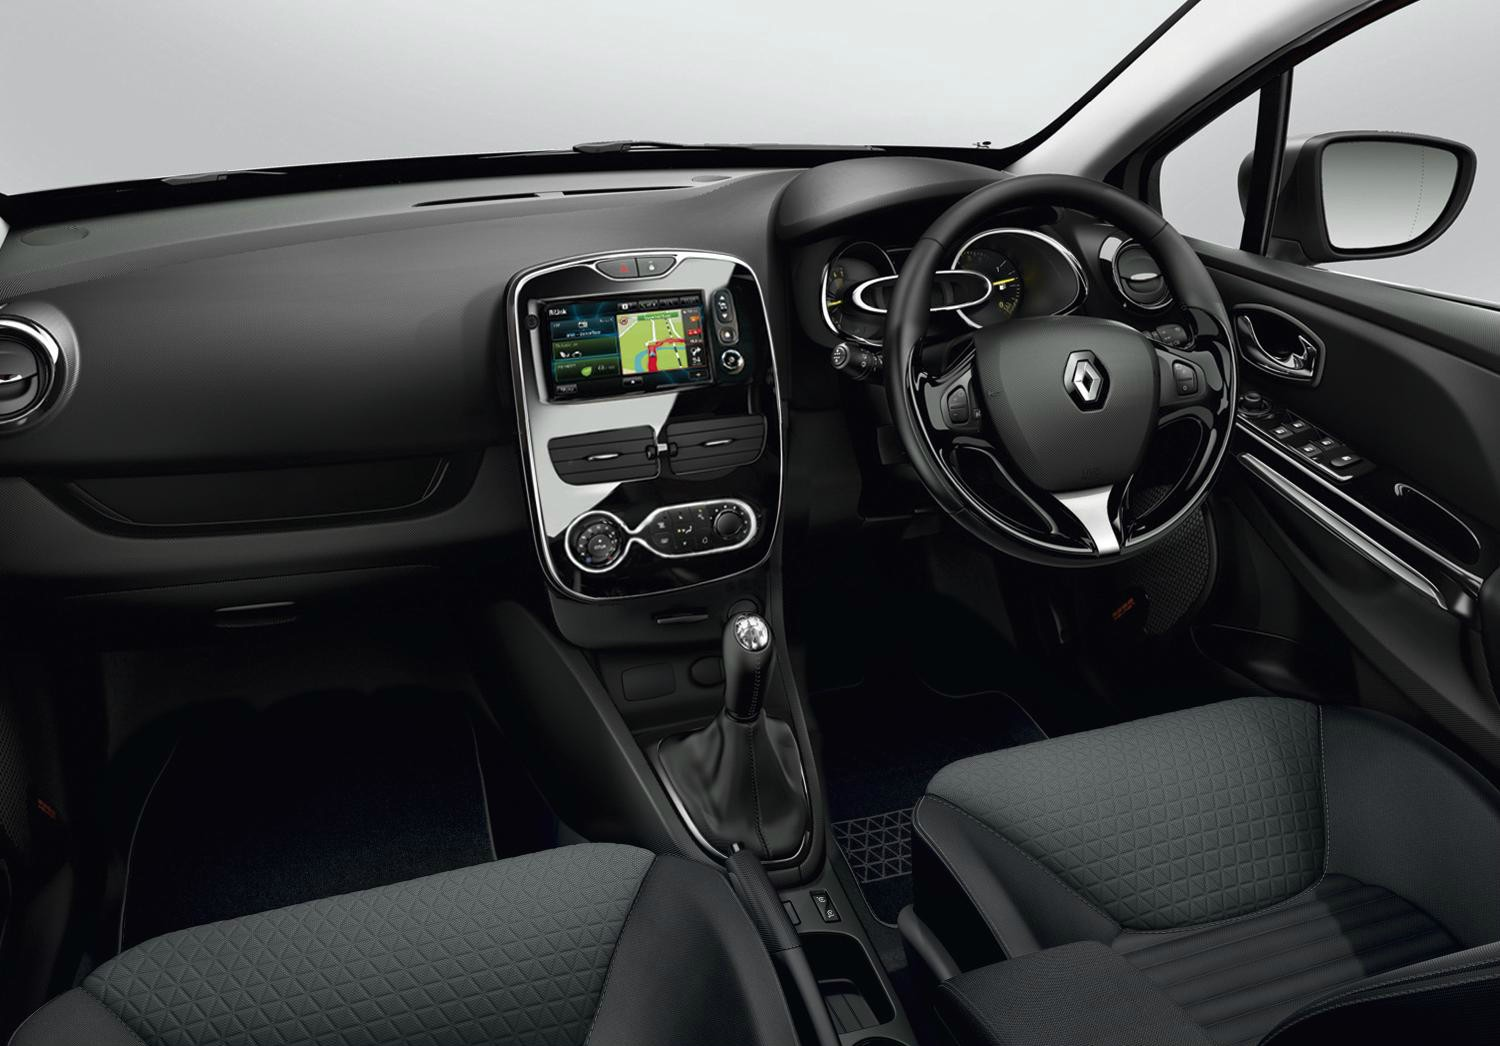 2015 renault clio gt line look pack costs 400 autoevolution. Black Bedroom Furniture Sets. Home Design Ideas